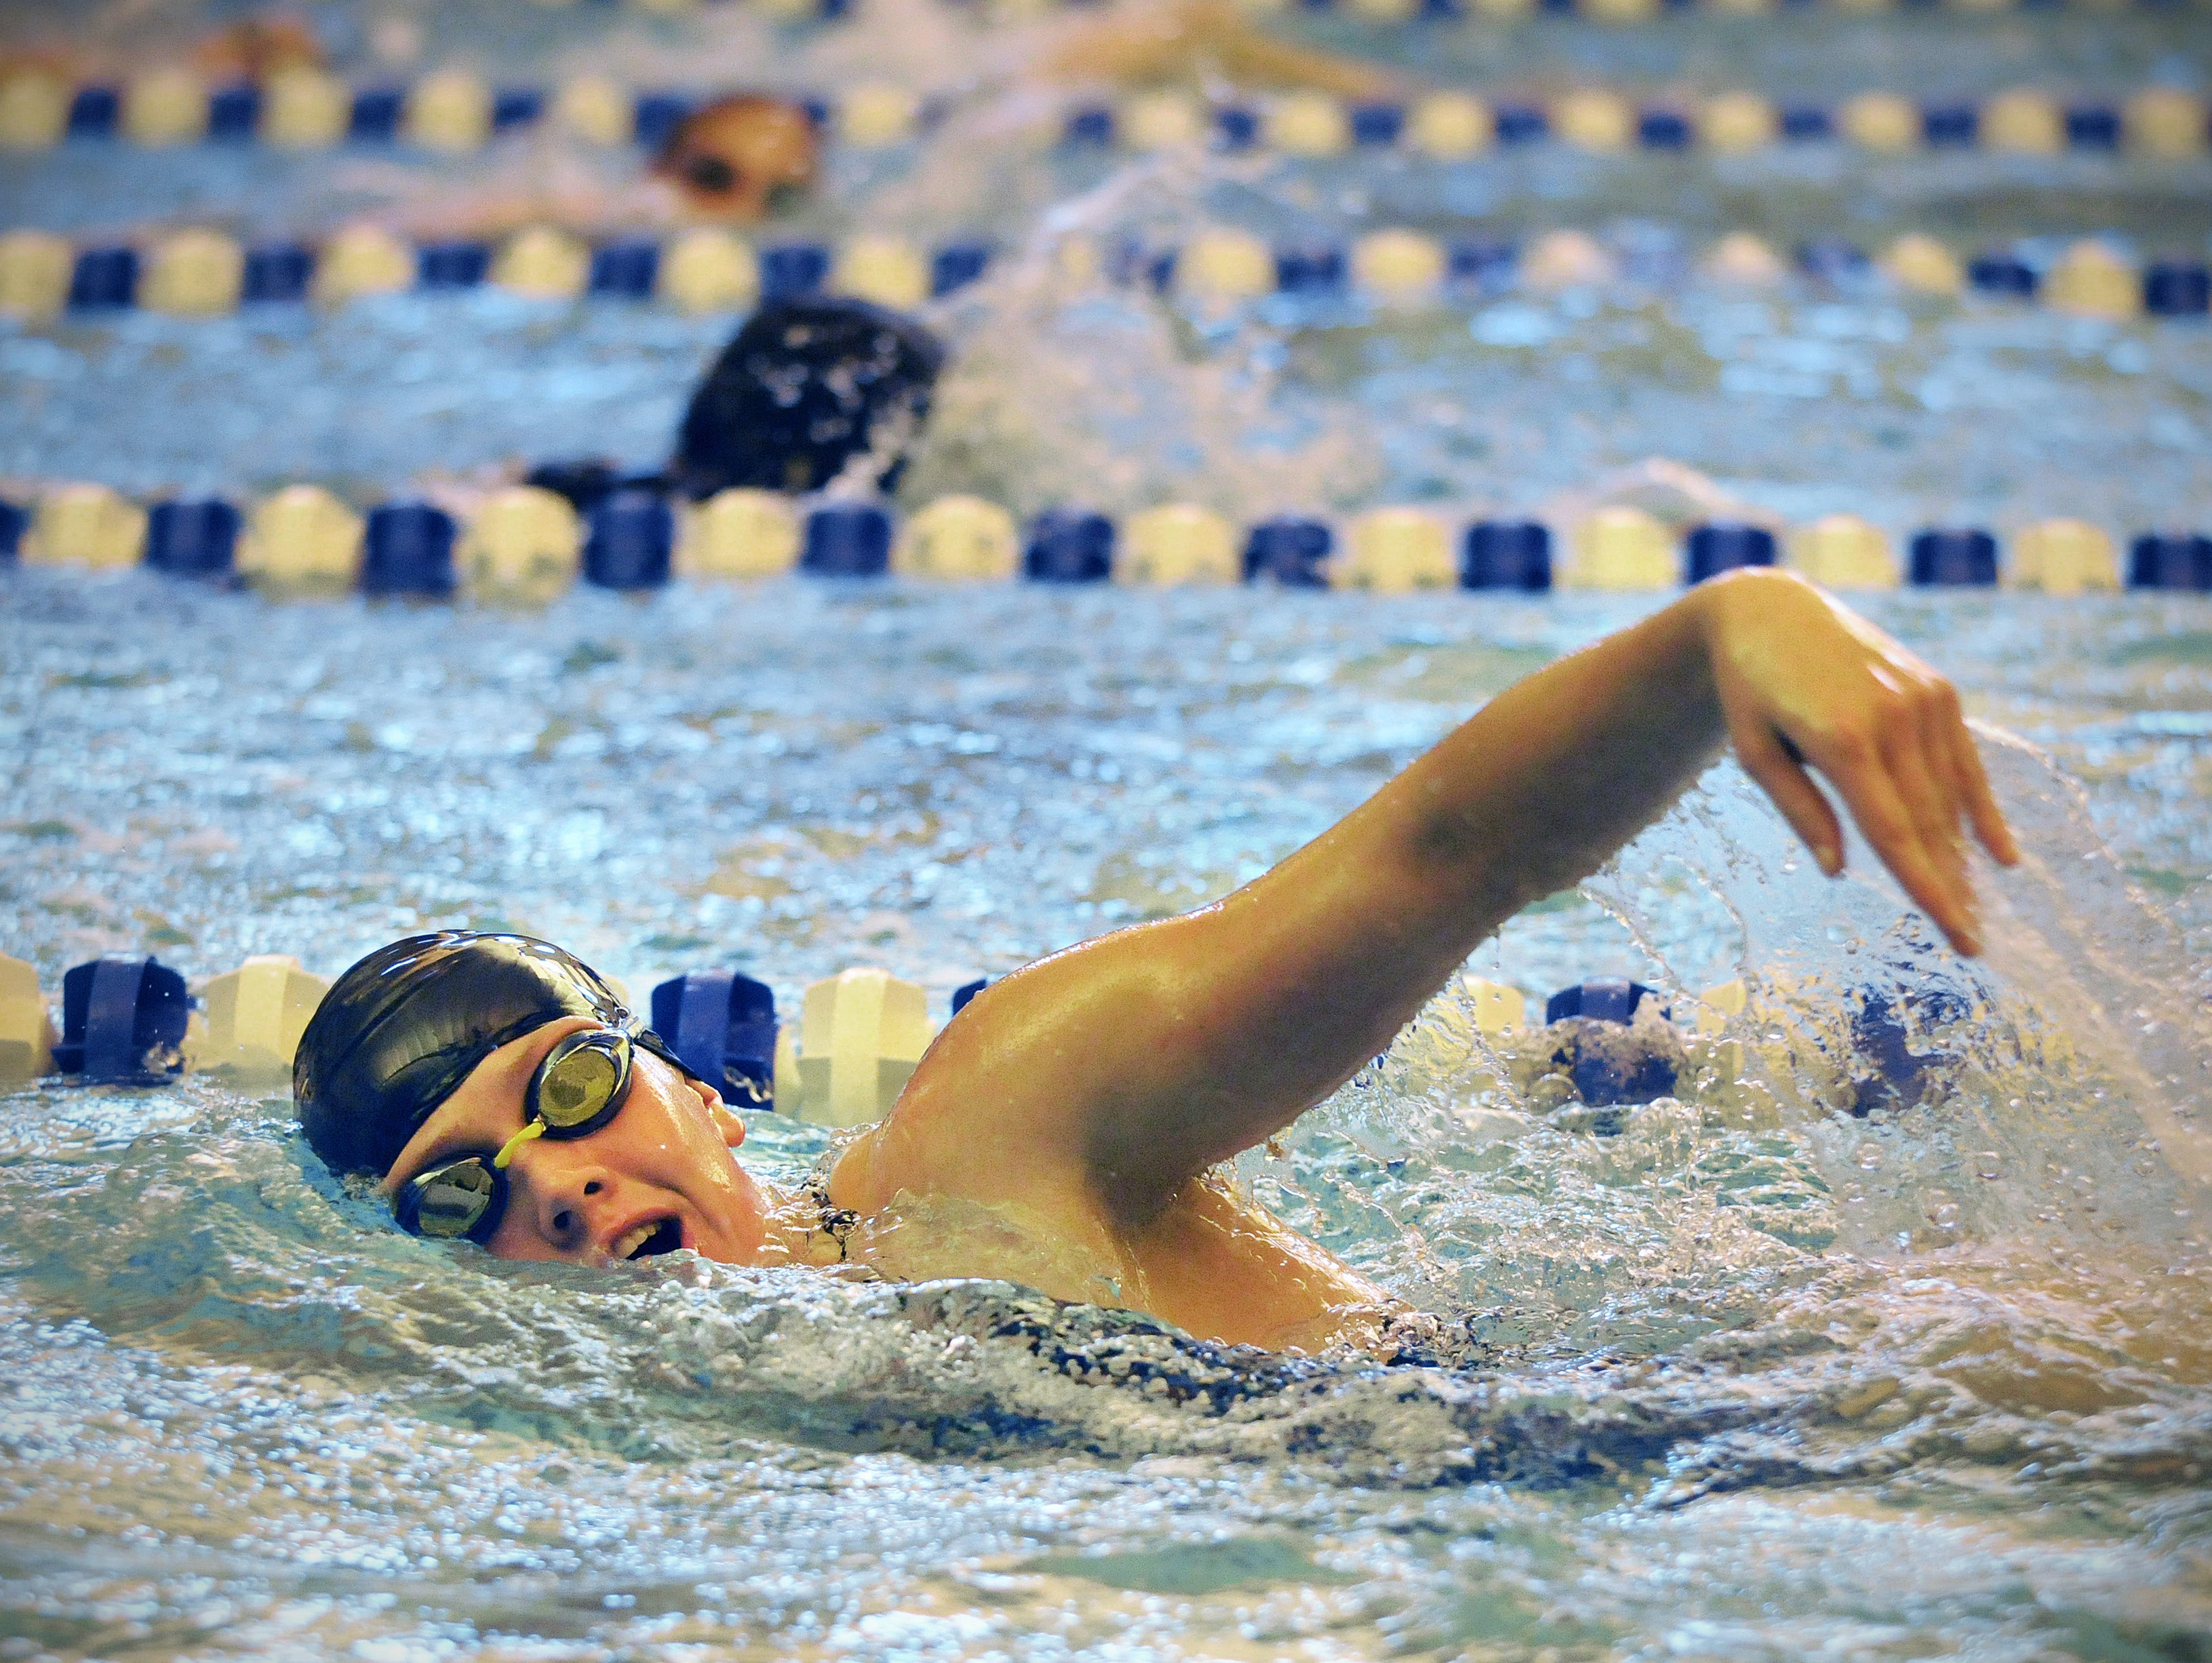 Briana Sanchez, bsanchez@stcloudtimes.com Foley High School swimmer Kasey Milstroh swims laps on Monday at the Foley High School pool during practice. Foley High School swimmer Kasey Milstroch swims laps on Monday, Sept. 28., at Foley High School pool during practice.